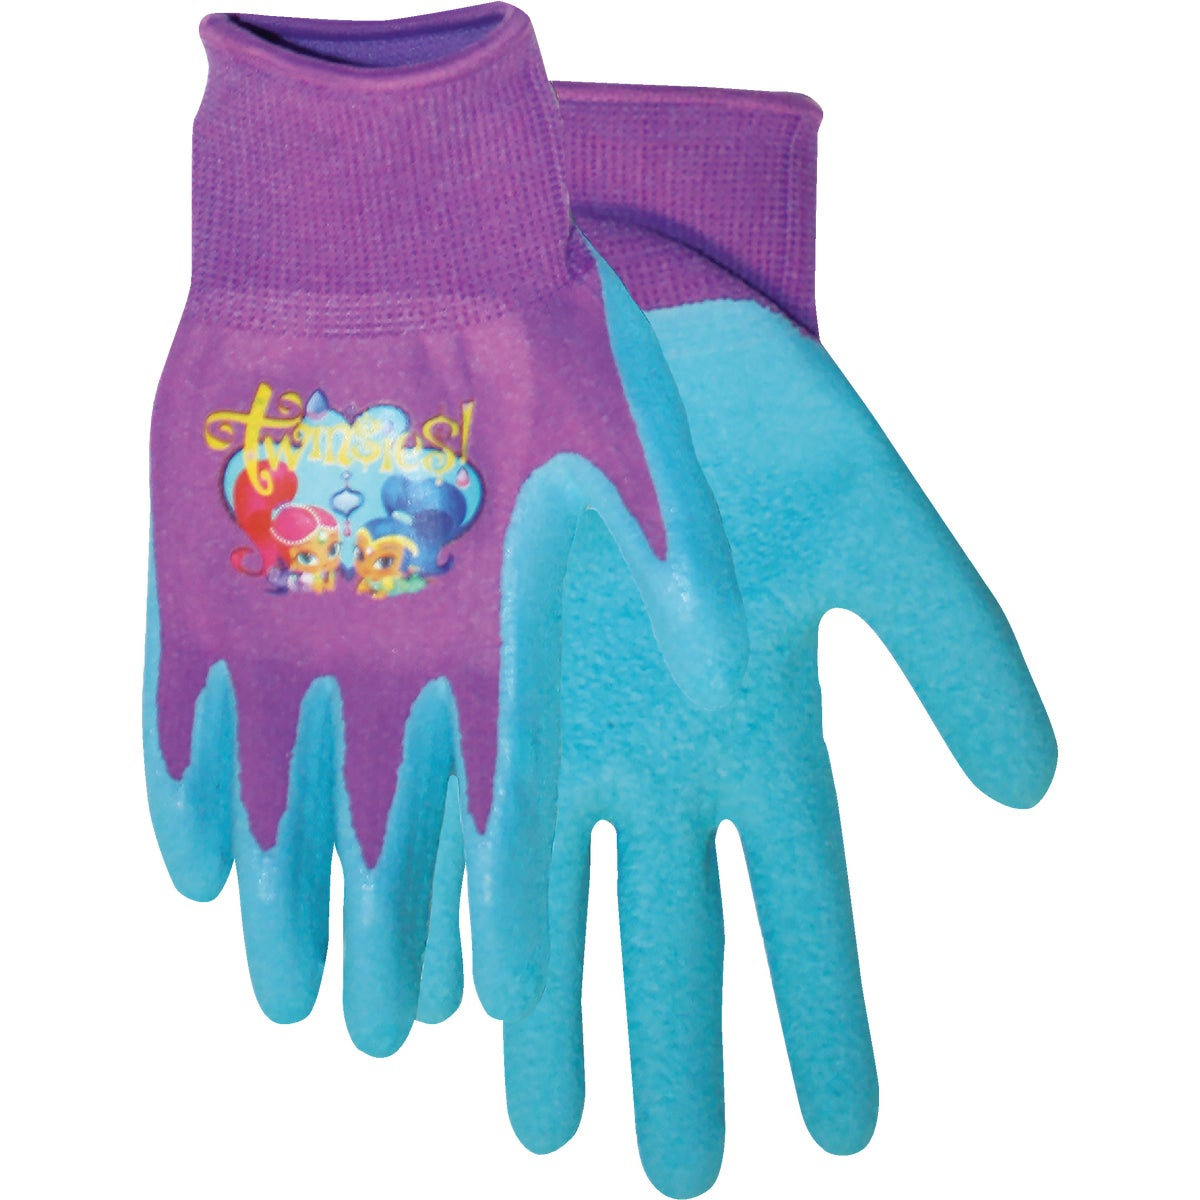 DORA CANVAS GLOVE - DE101T by Midwest Quality Glov